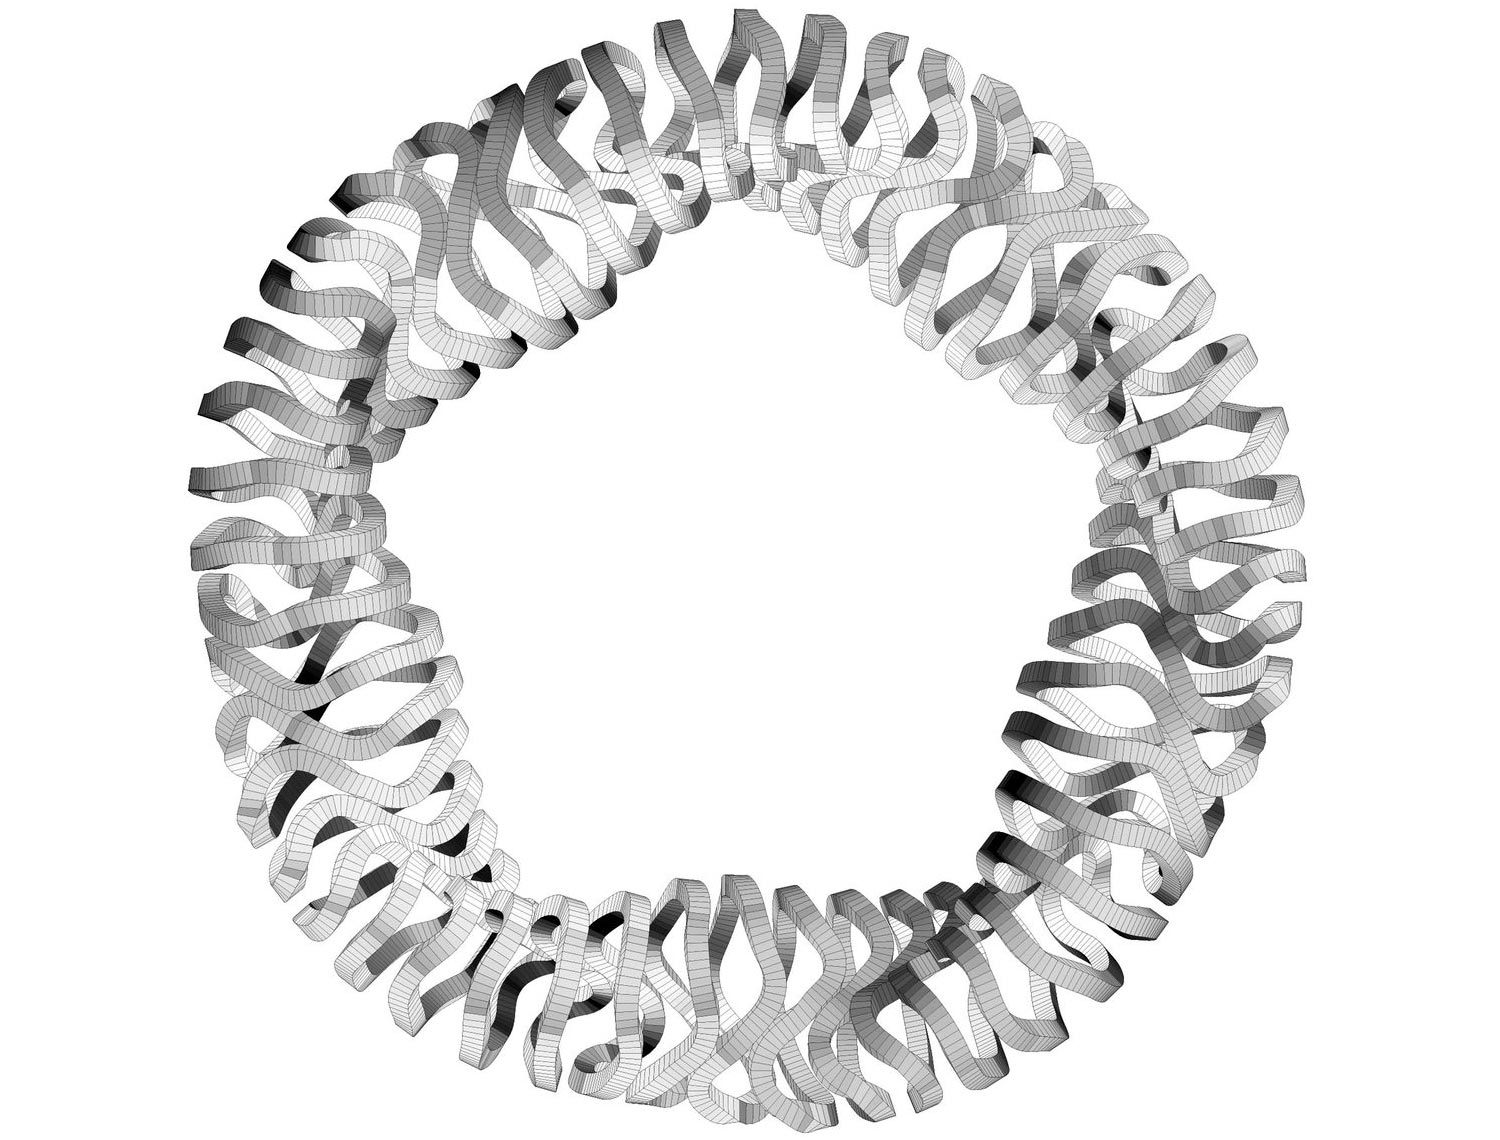 The magnet system of Wendelstein 7-X. Fifty superconducting magnet coils create the magnetic cage for confining the plasma. In the twisted coil forms,